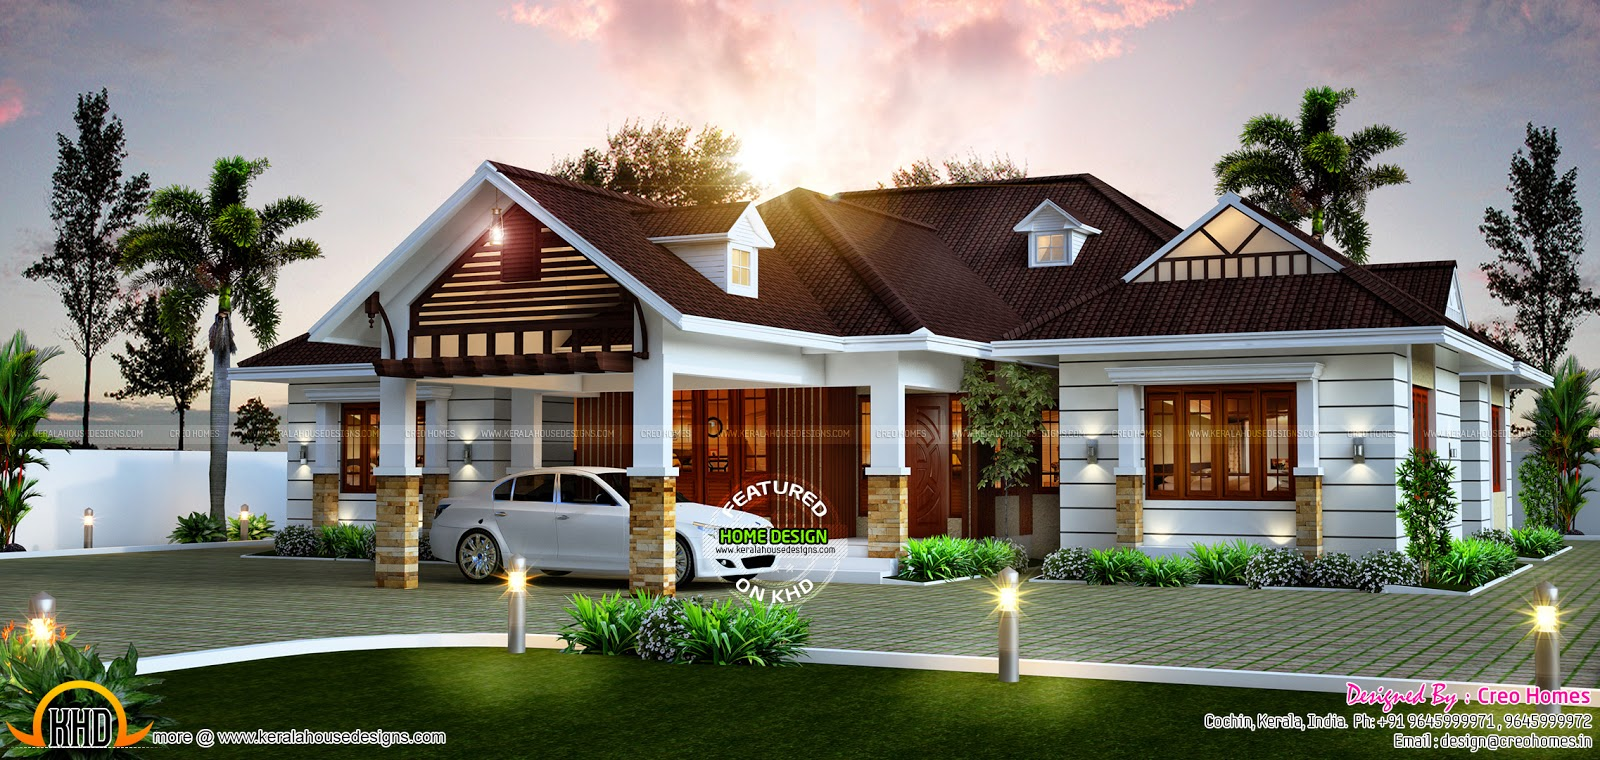 Awesome single storied home kerala home design and floor for Awesome home plans